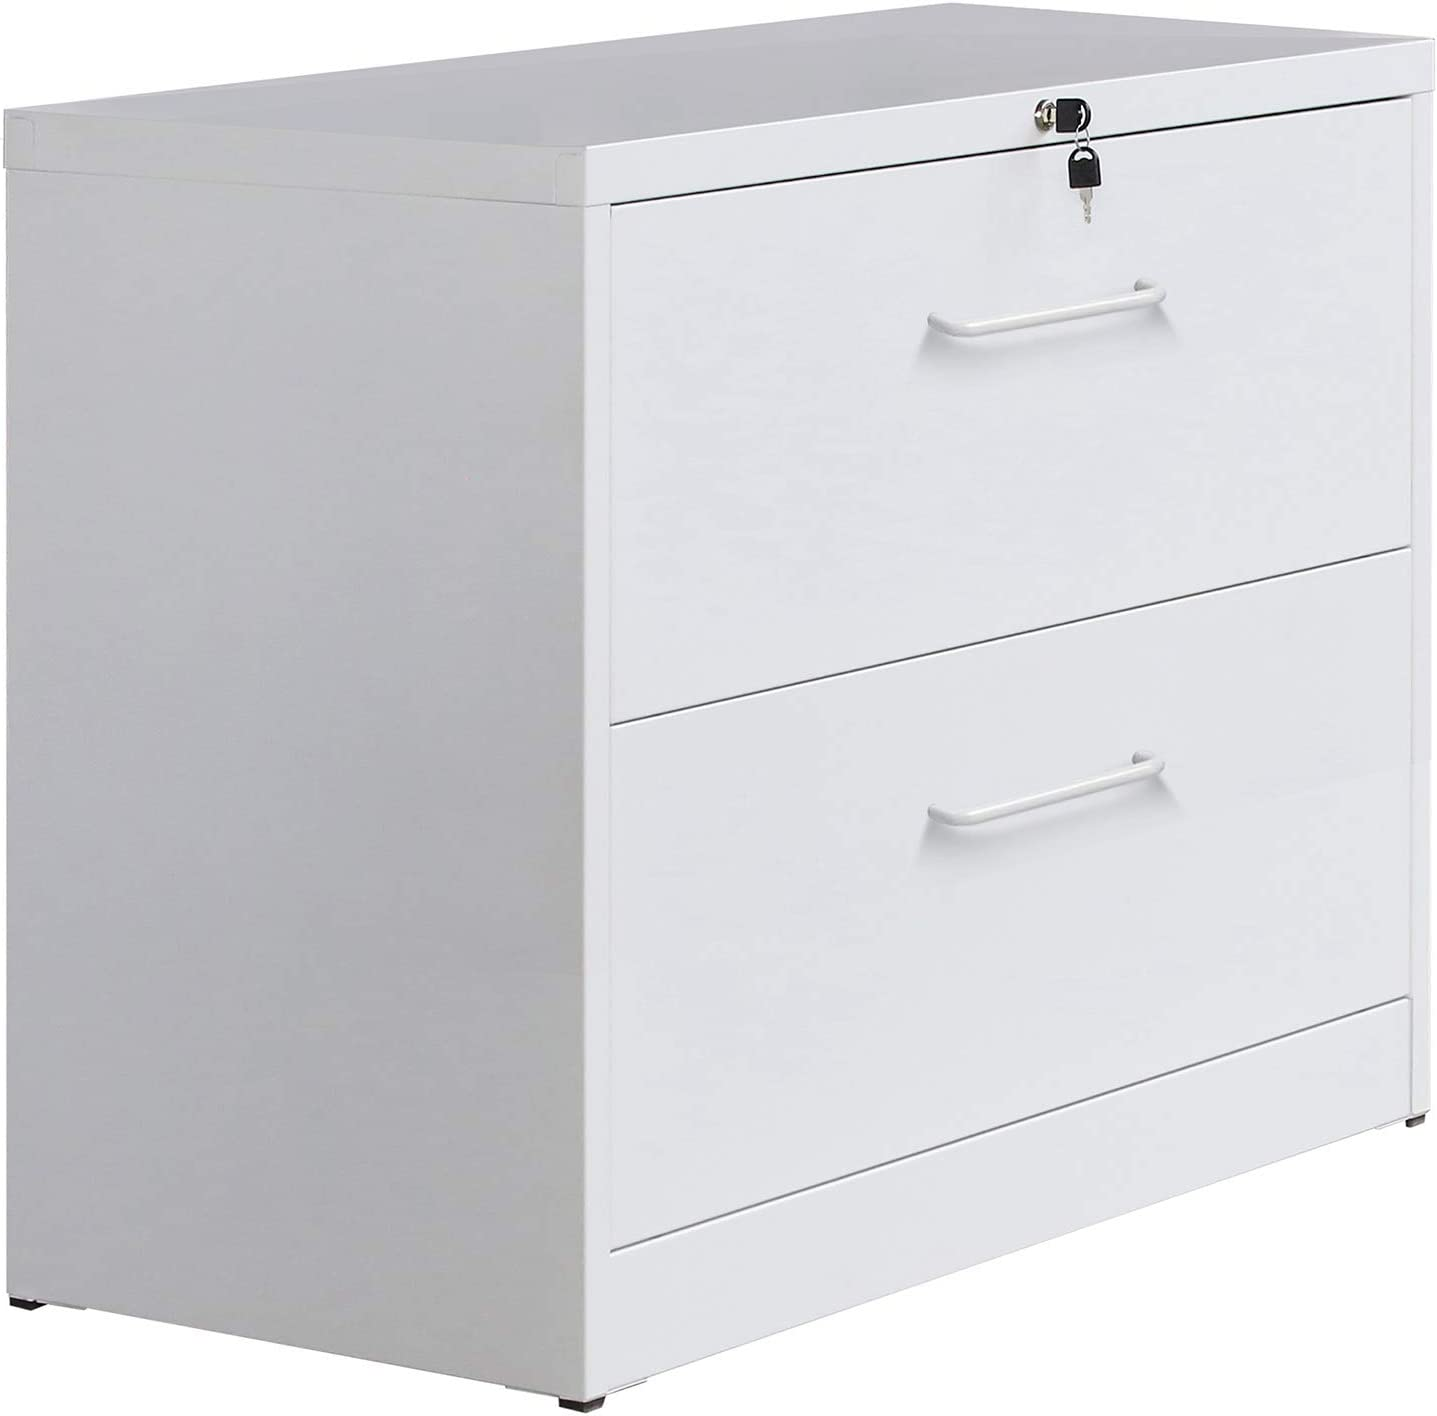 Merax Lateral File Cabinet Anti-tilt Structure Lockable Heavy Duty Metal 2 Drawer File Cabinet with Handle (White)